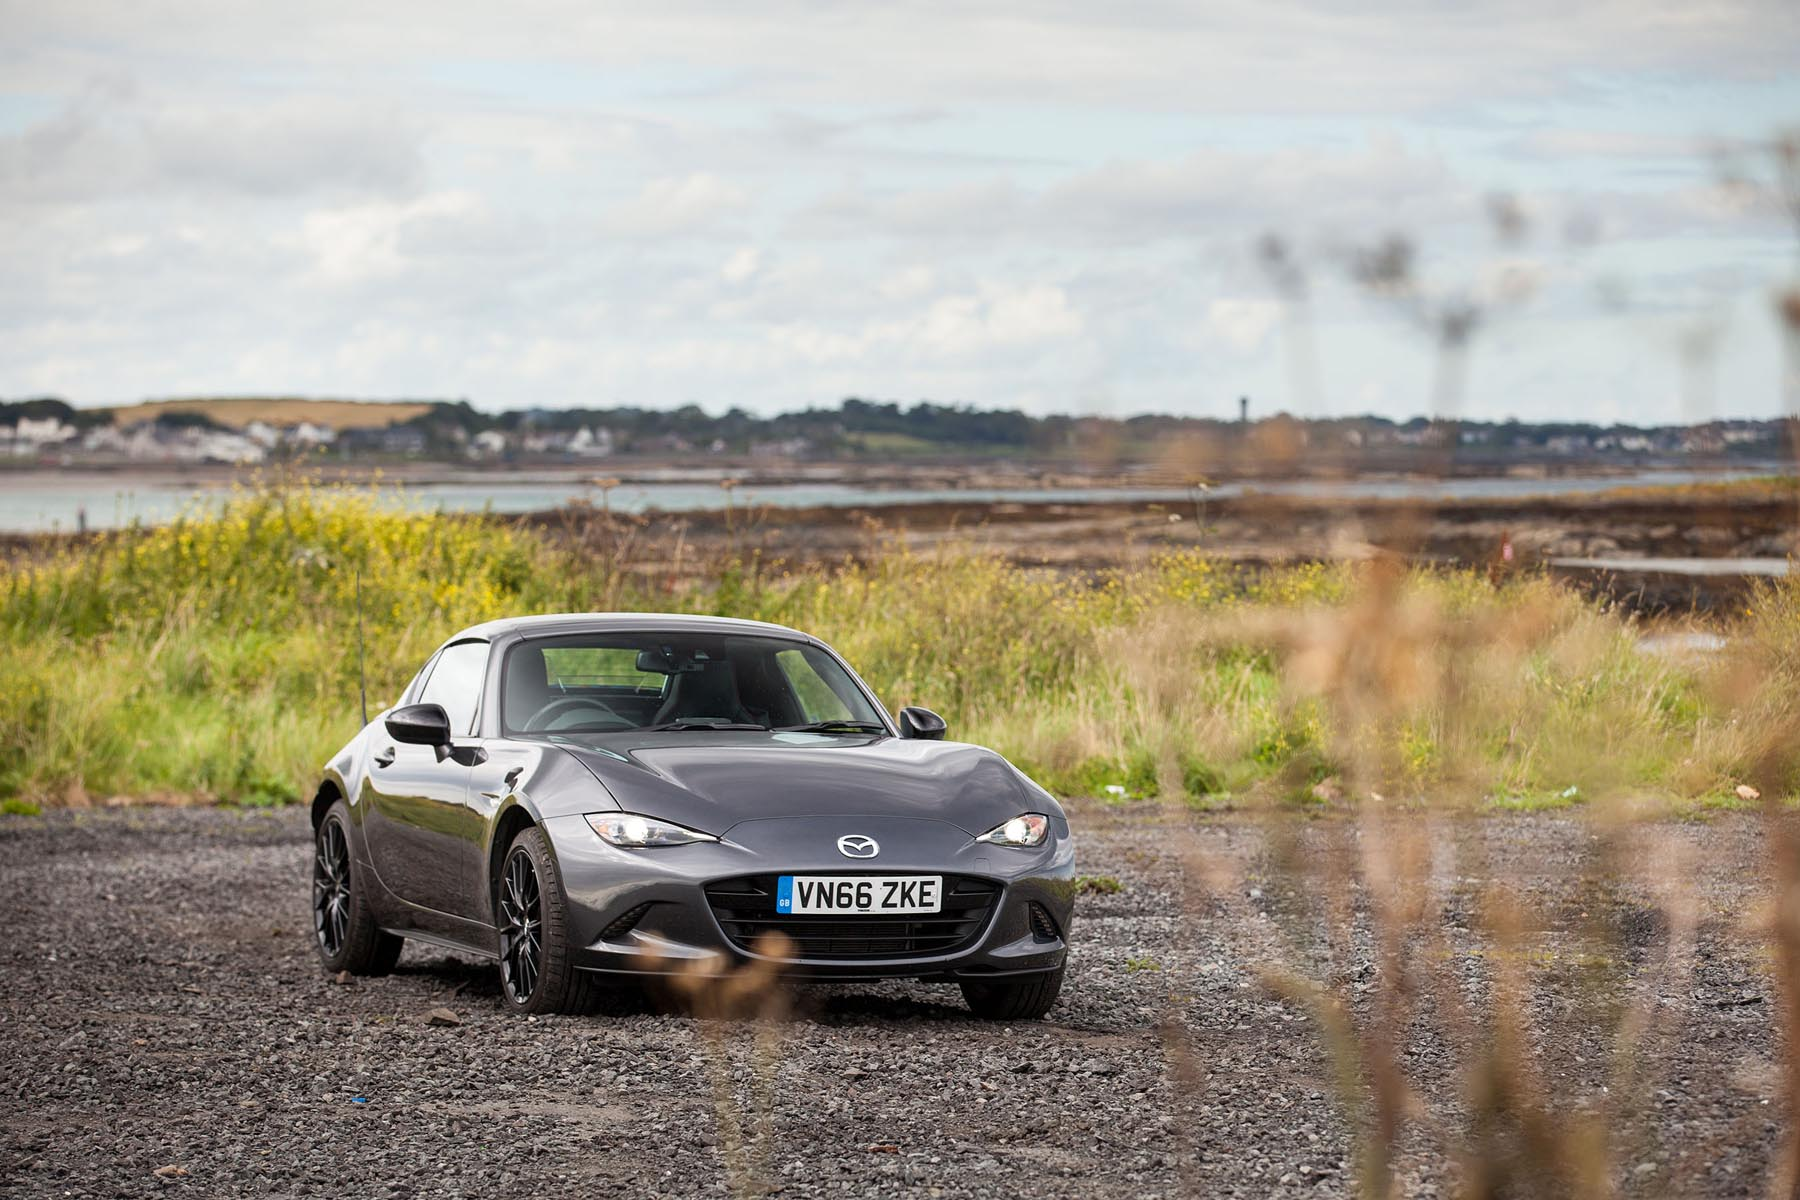 THE WORLDS MOST LOVED MAZDA GETS A TARGA TOP Used Cars NI Blog - Best used small sports car